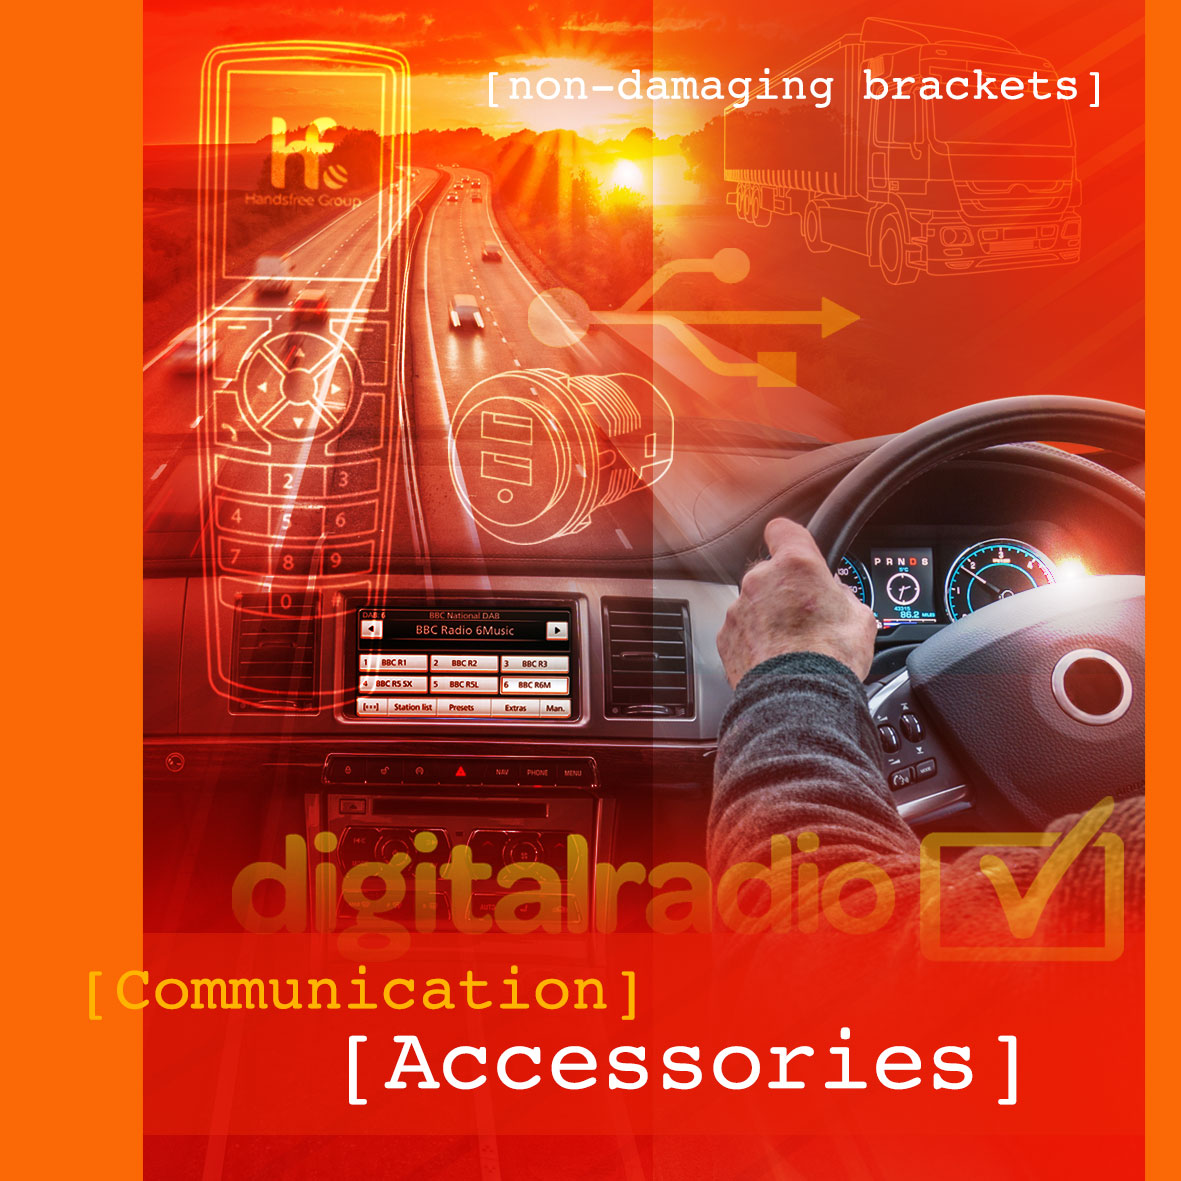 Handsfree Kit Accessories